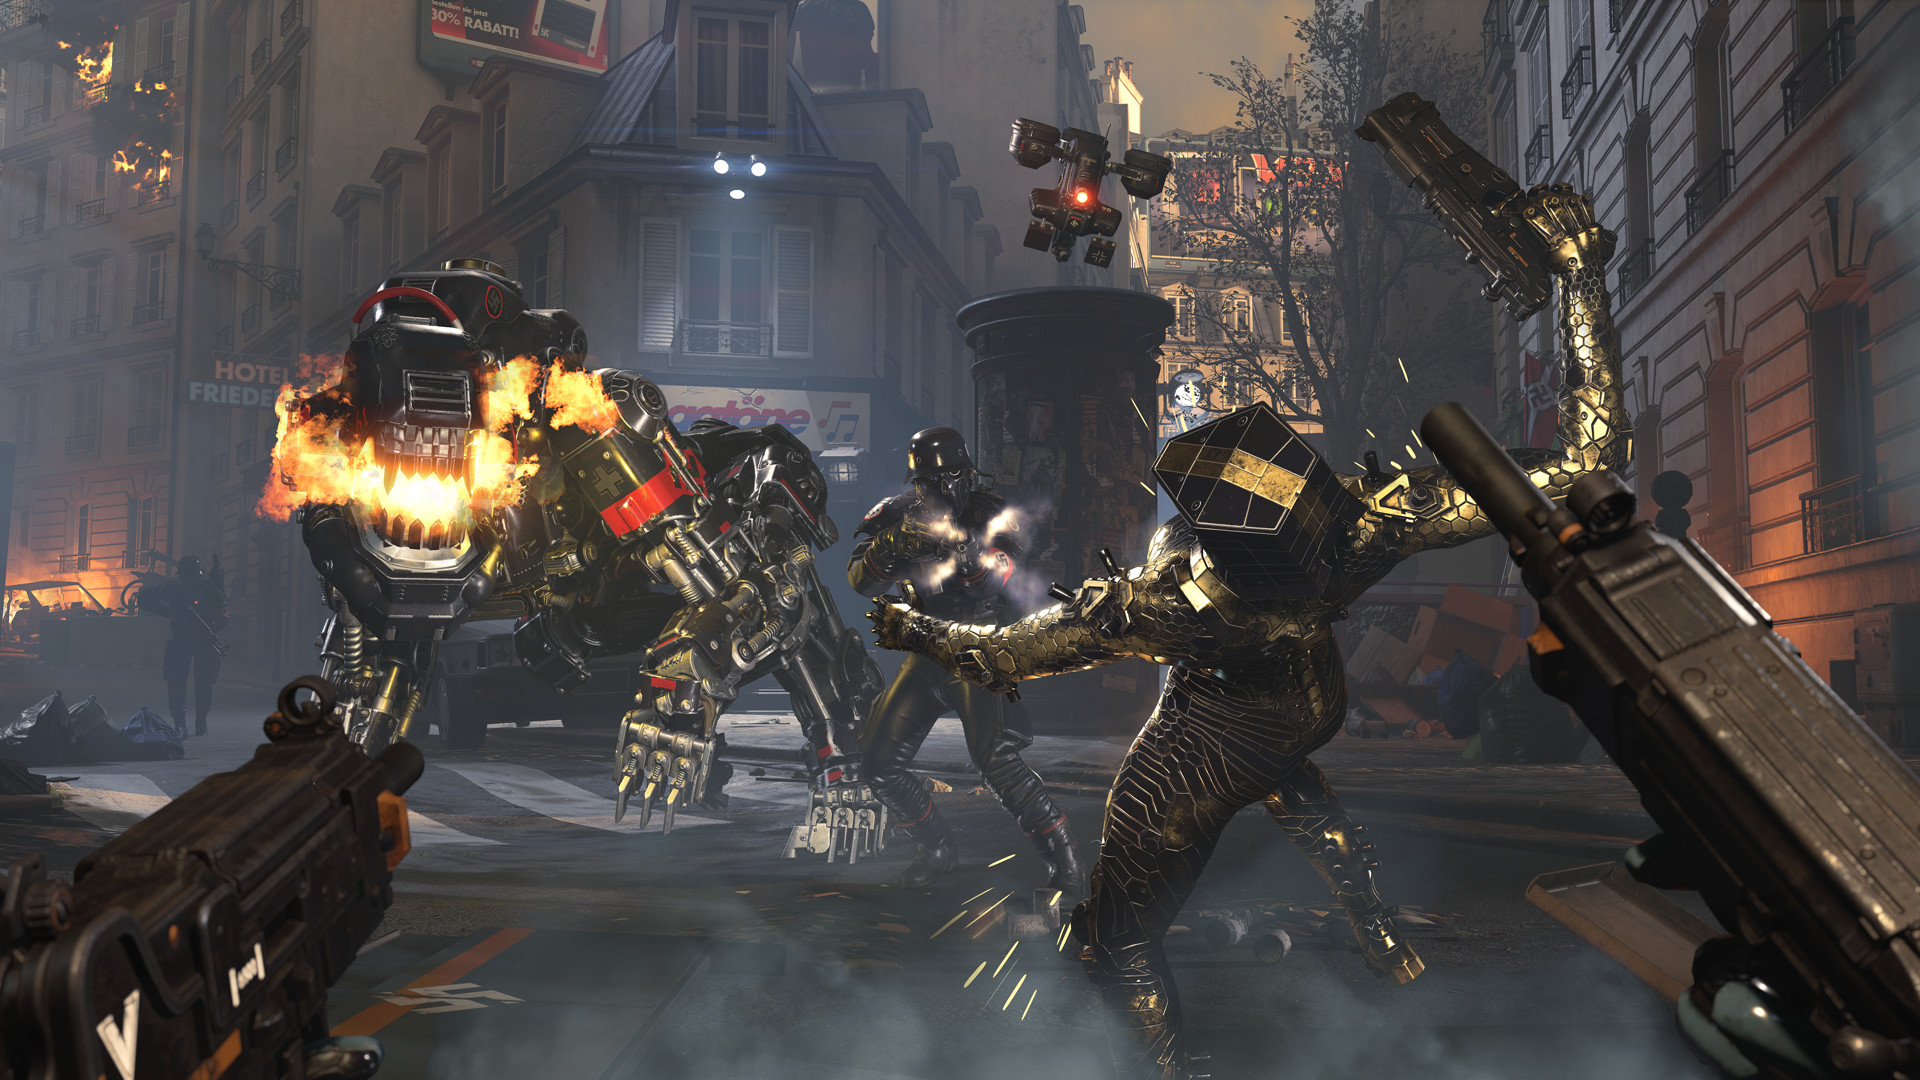 multiplayer game problems ruin single player games: open world freedom, bad pacing, sidequests